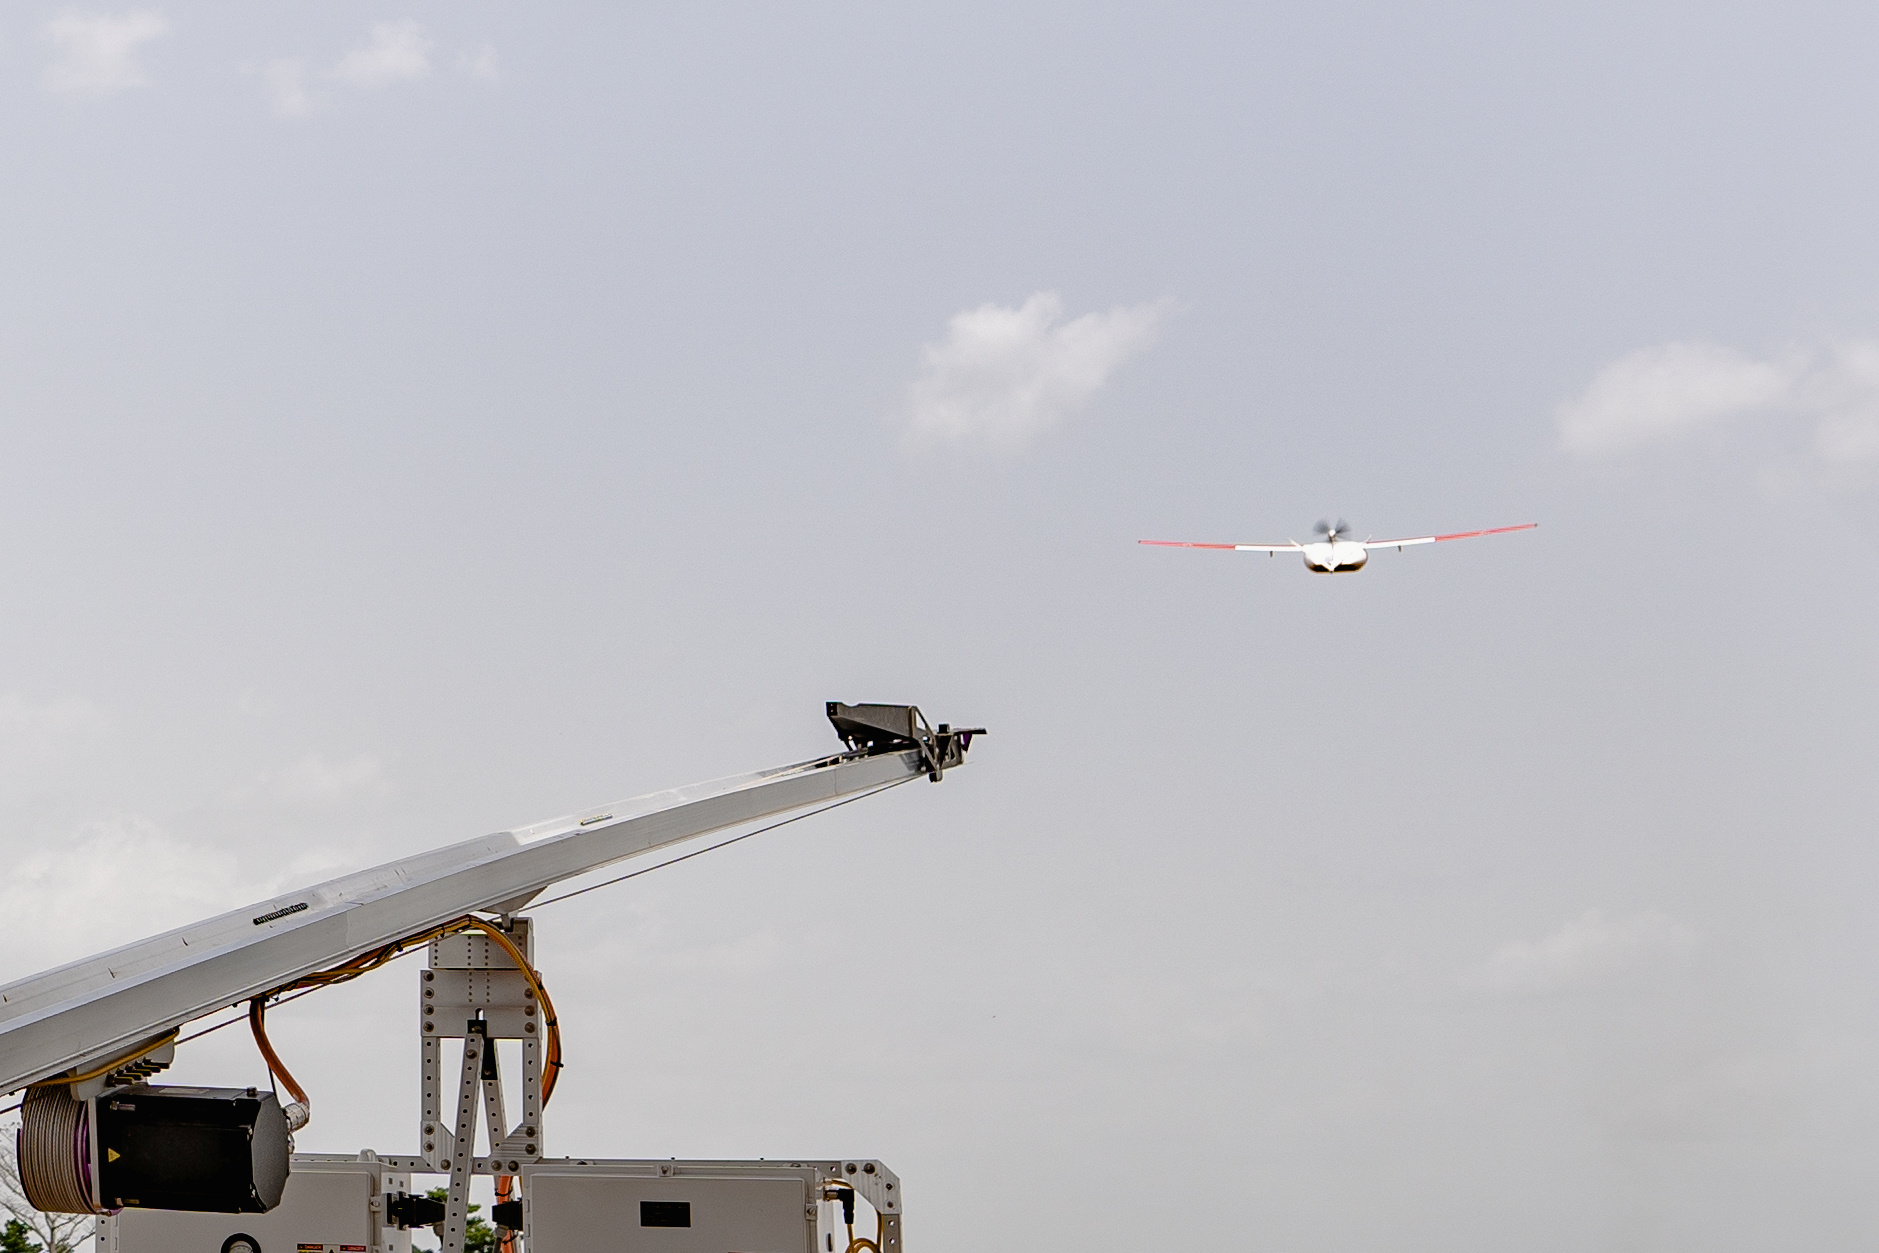 Zipline drone takes off in Ghana, April 22, 2019. Picture taken April 22, 2019. Zipline drones, supported by Gavi and the UPS Foundation, cut the time taken to deliver lifesaving medical supplies from hours to minutes. Gavi/2019/Tony Noel via REUTERS   ATTENTION EDITORS - THIS IMAGE HAS BEEN SUPPLIED BY A THIRD PARTY. MANDATORY CREDIT